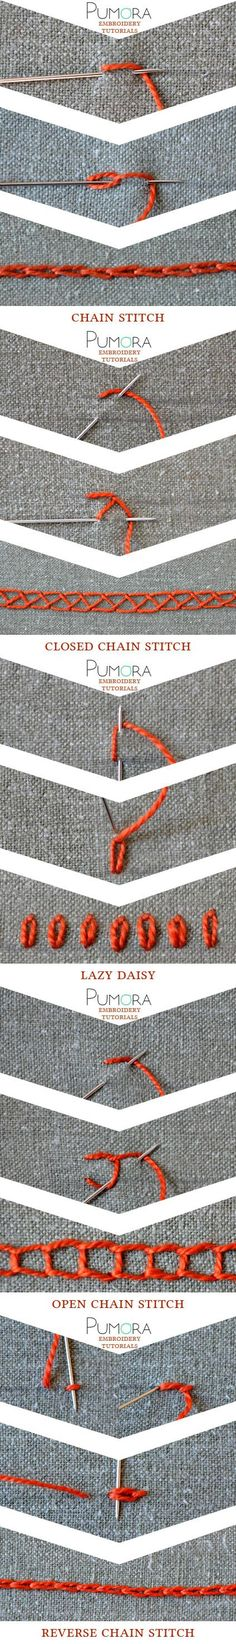 embroidery tutorials: chain stitch with variations broderie, ricamo, sticken…